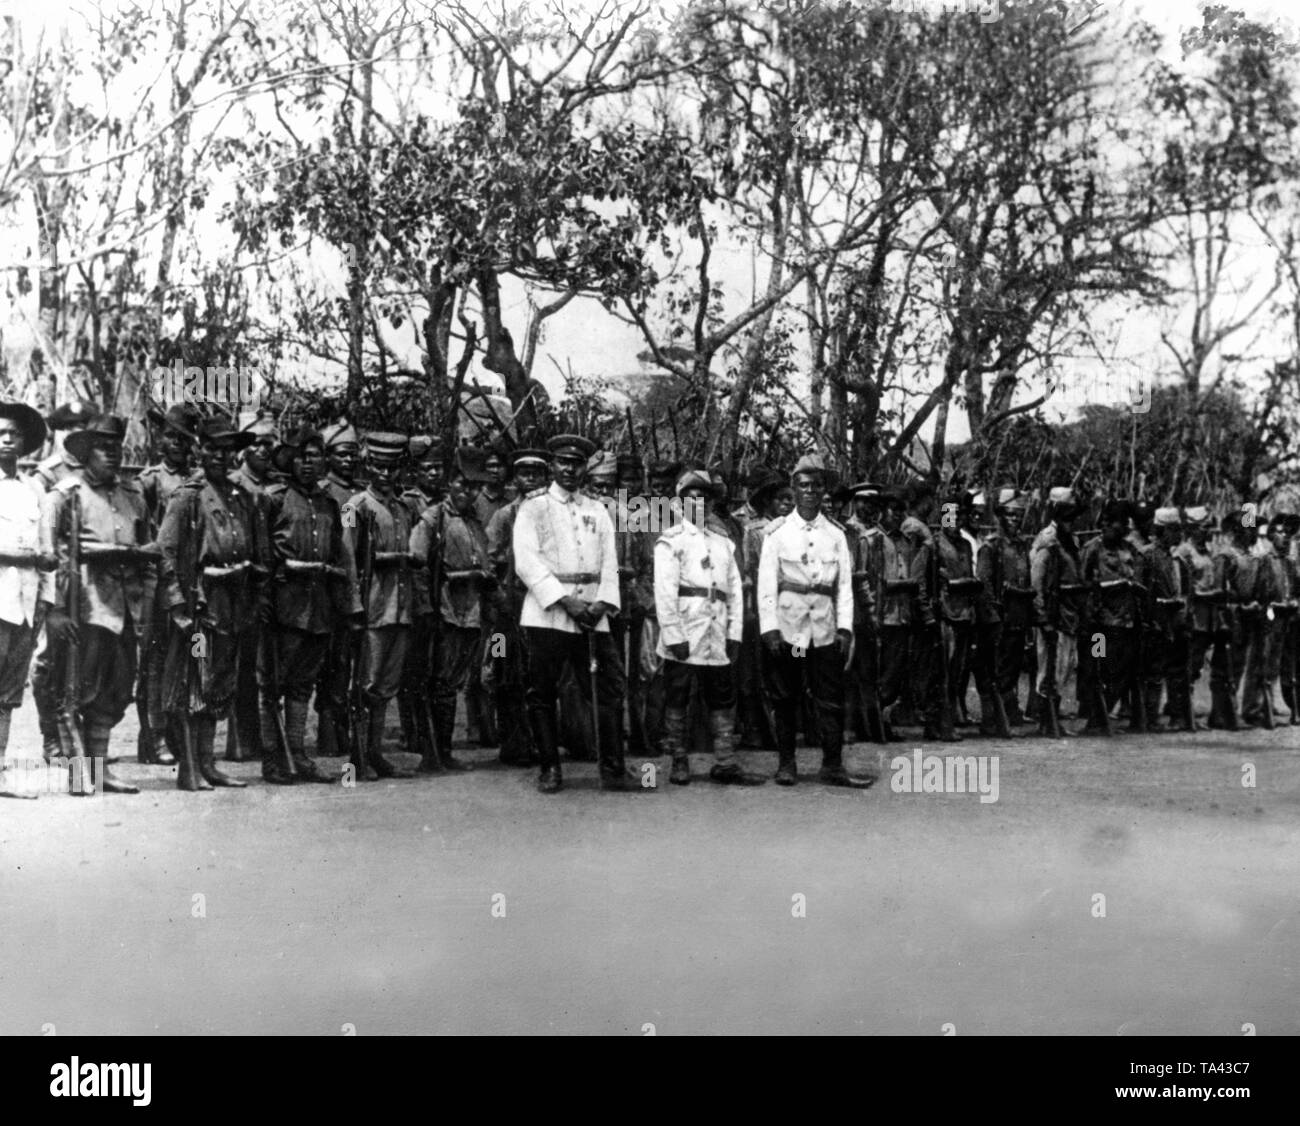 The private army: King Njoya of Bamum (middle group left) with his soldiers in uniforms after German colonial pattern. - Stock Image